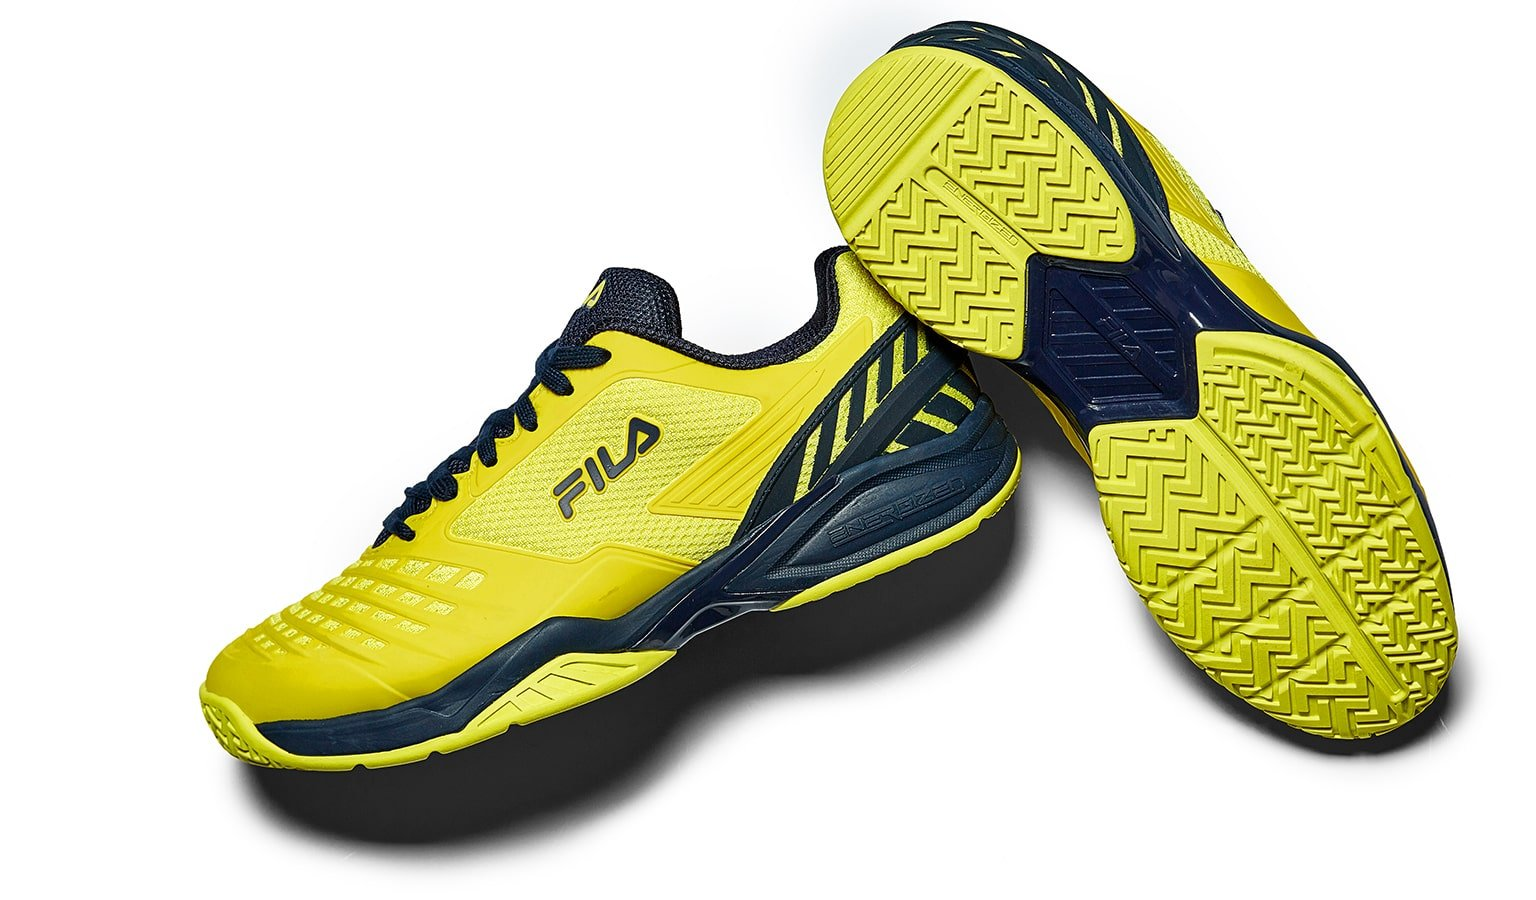 Best Tennis Shoes For Wide Feet 2020